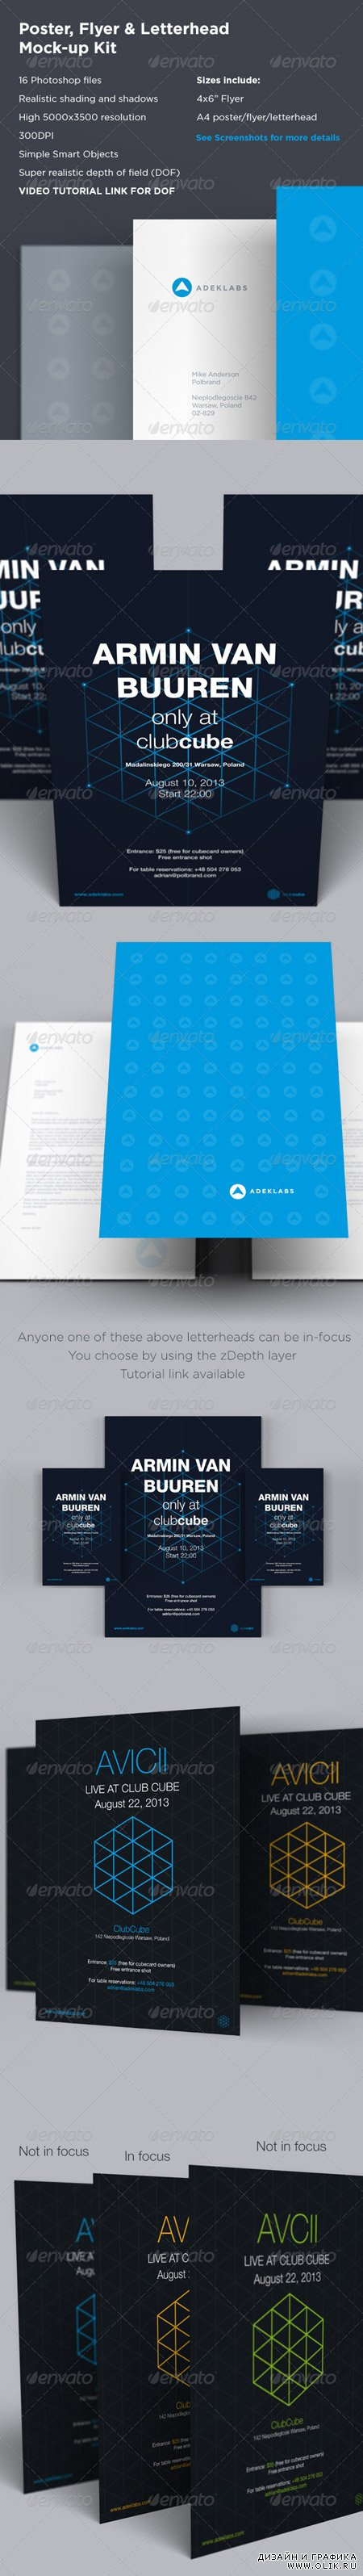 Poster Flyer & Letterhead Mock-up Kit